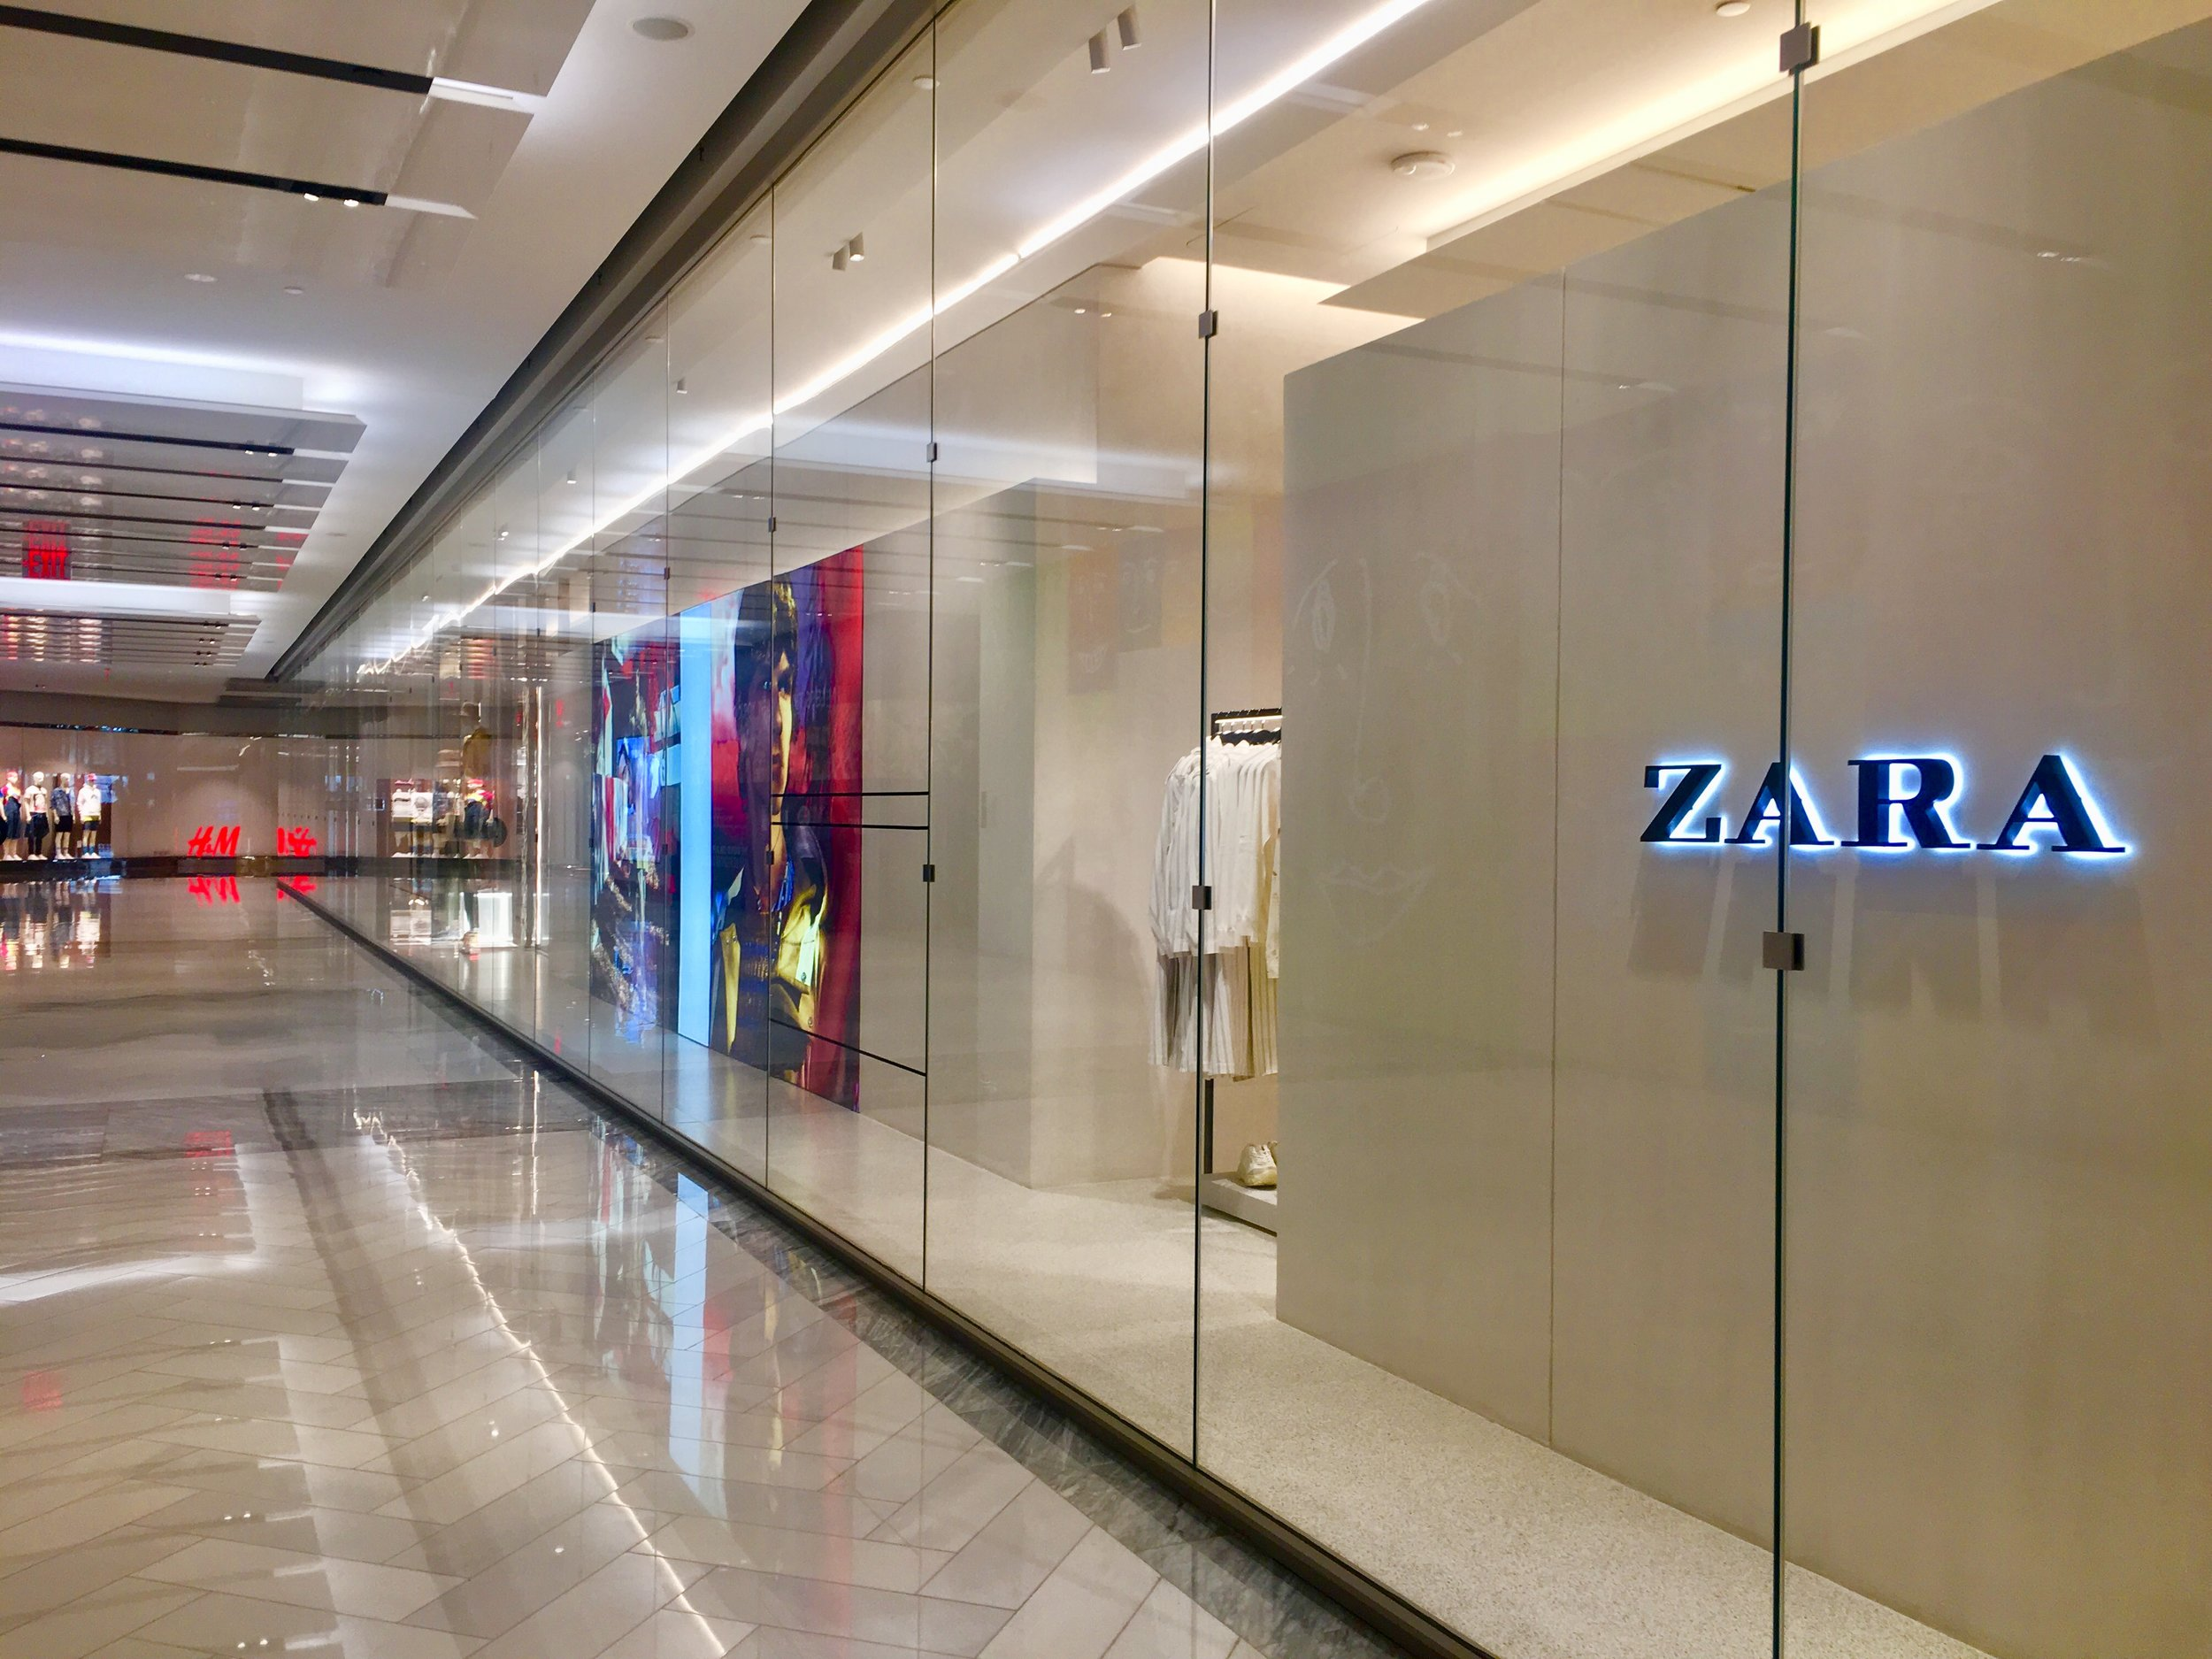 Zara and H&M are some of the affordable stores you will find at Hudson Yards.